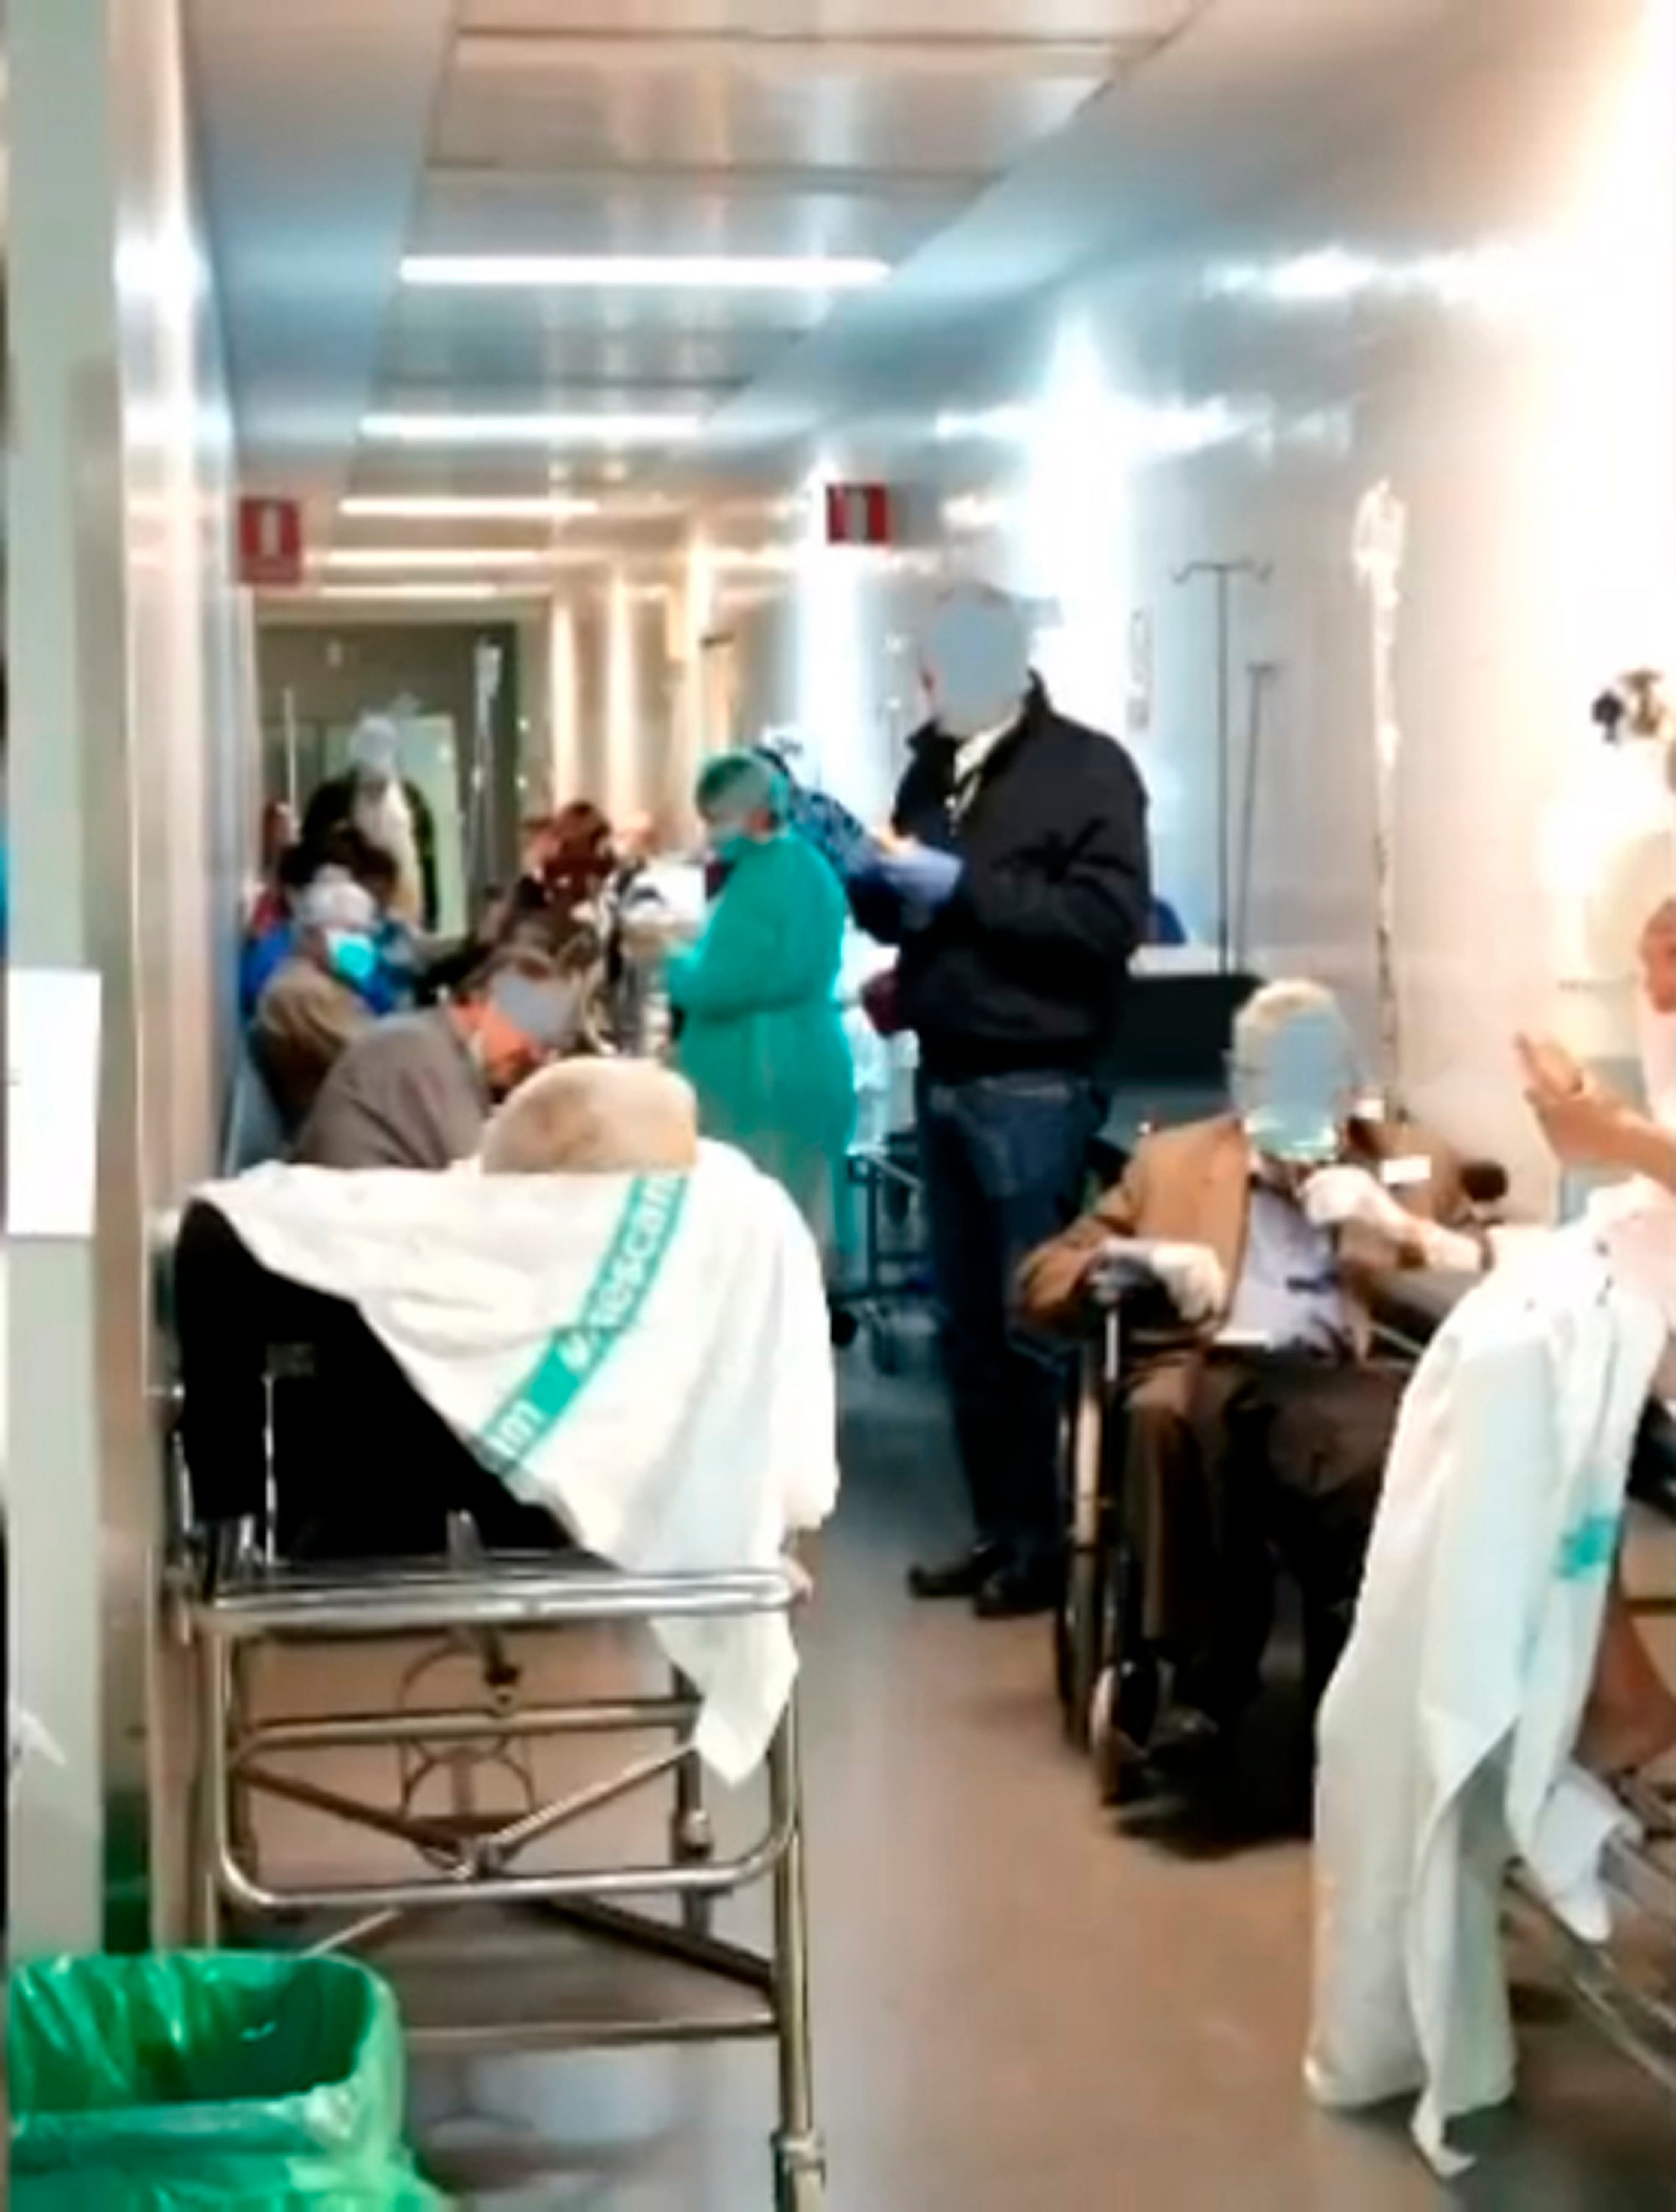 Coronavirus patients in Spain are filmed huddled in a corridor as the country's hospitals struggle to cope with the pandemic